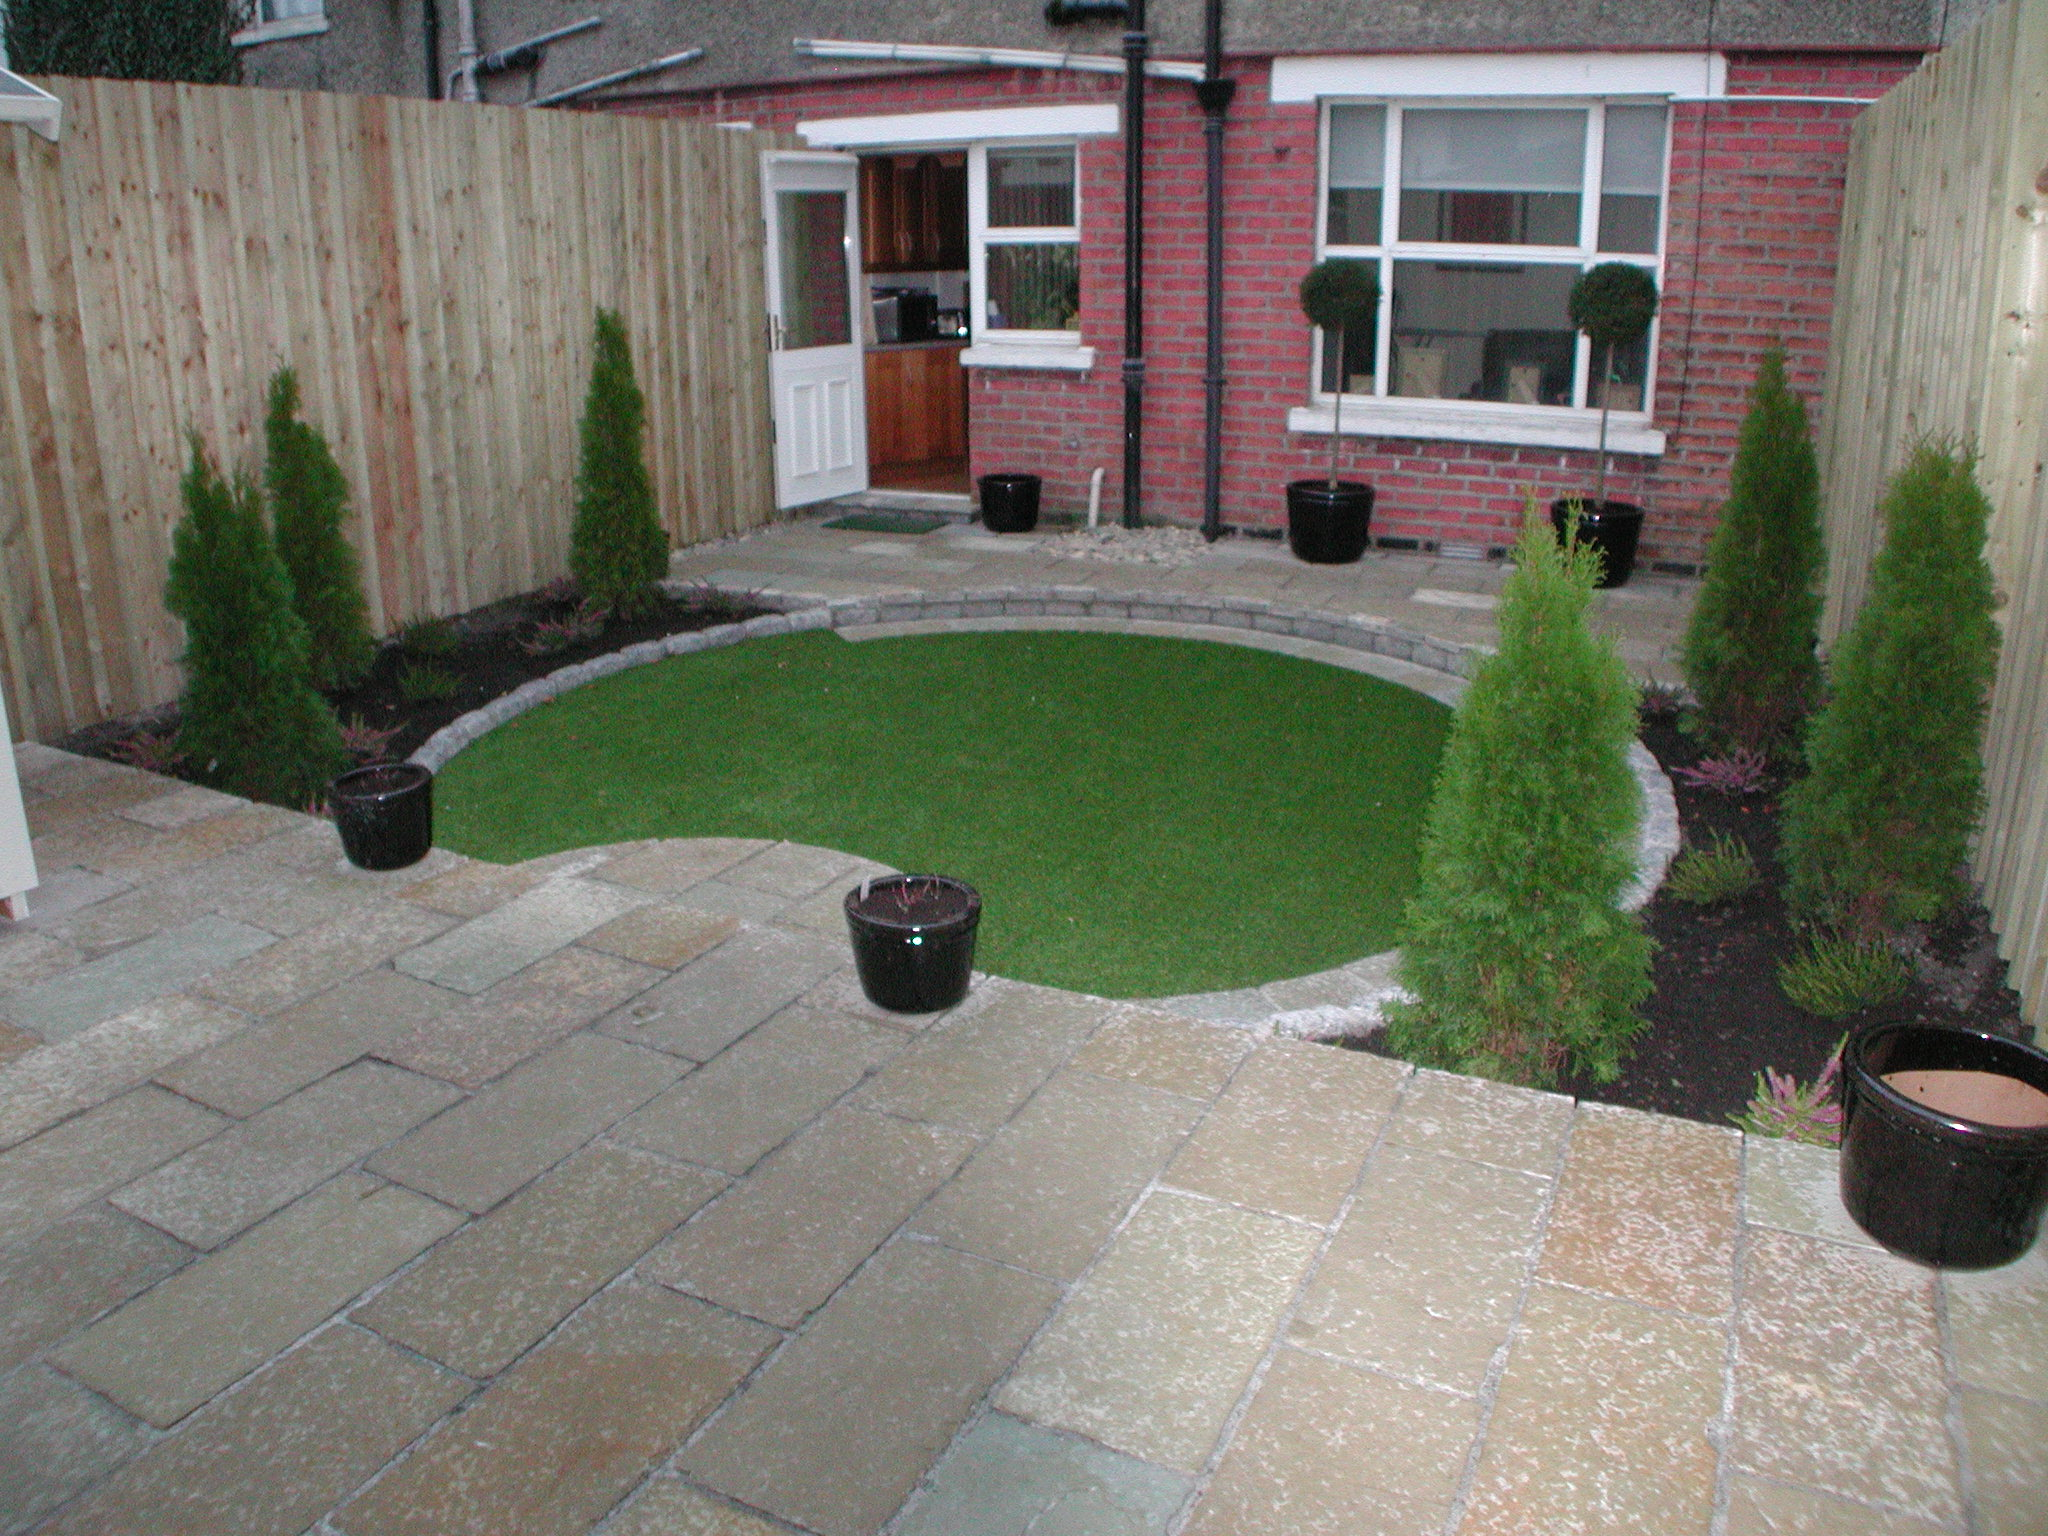 Landscaping Contract and Garden Design for Clonliffe Gardens, Dublin